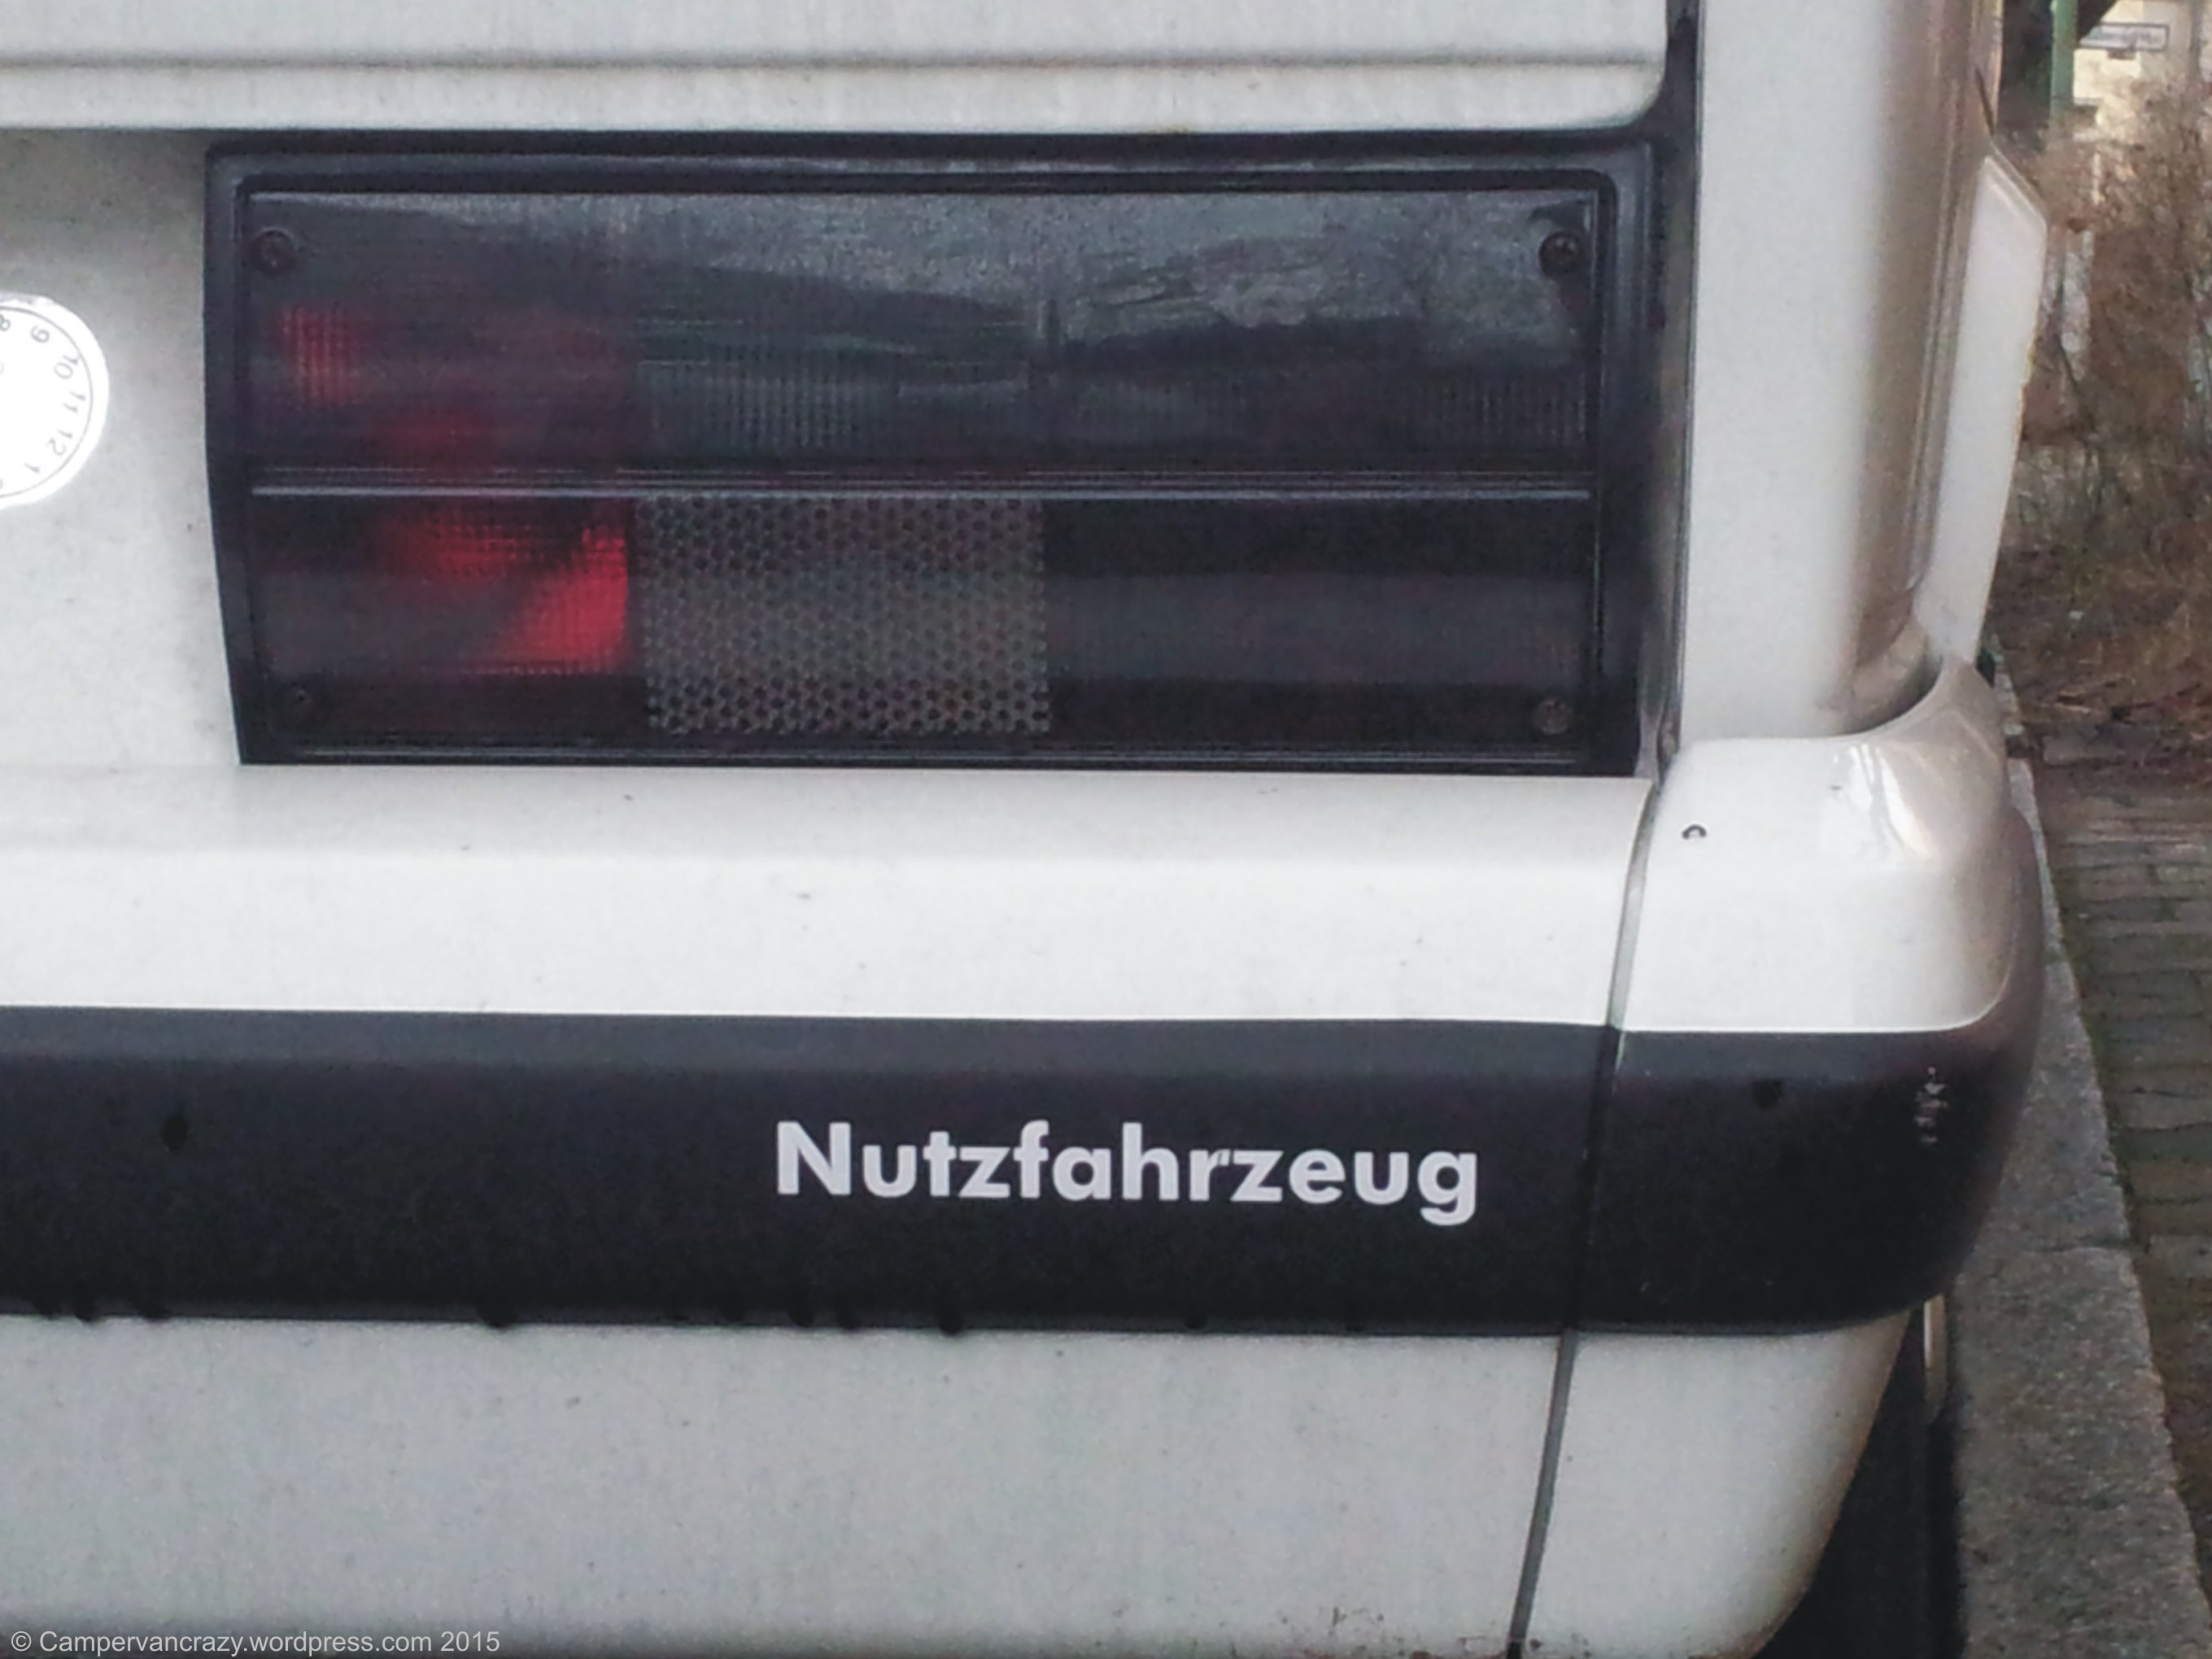 Nutzfahrzeug (German for utility vehicle, also VW's Commercial Vehicles division)